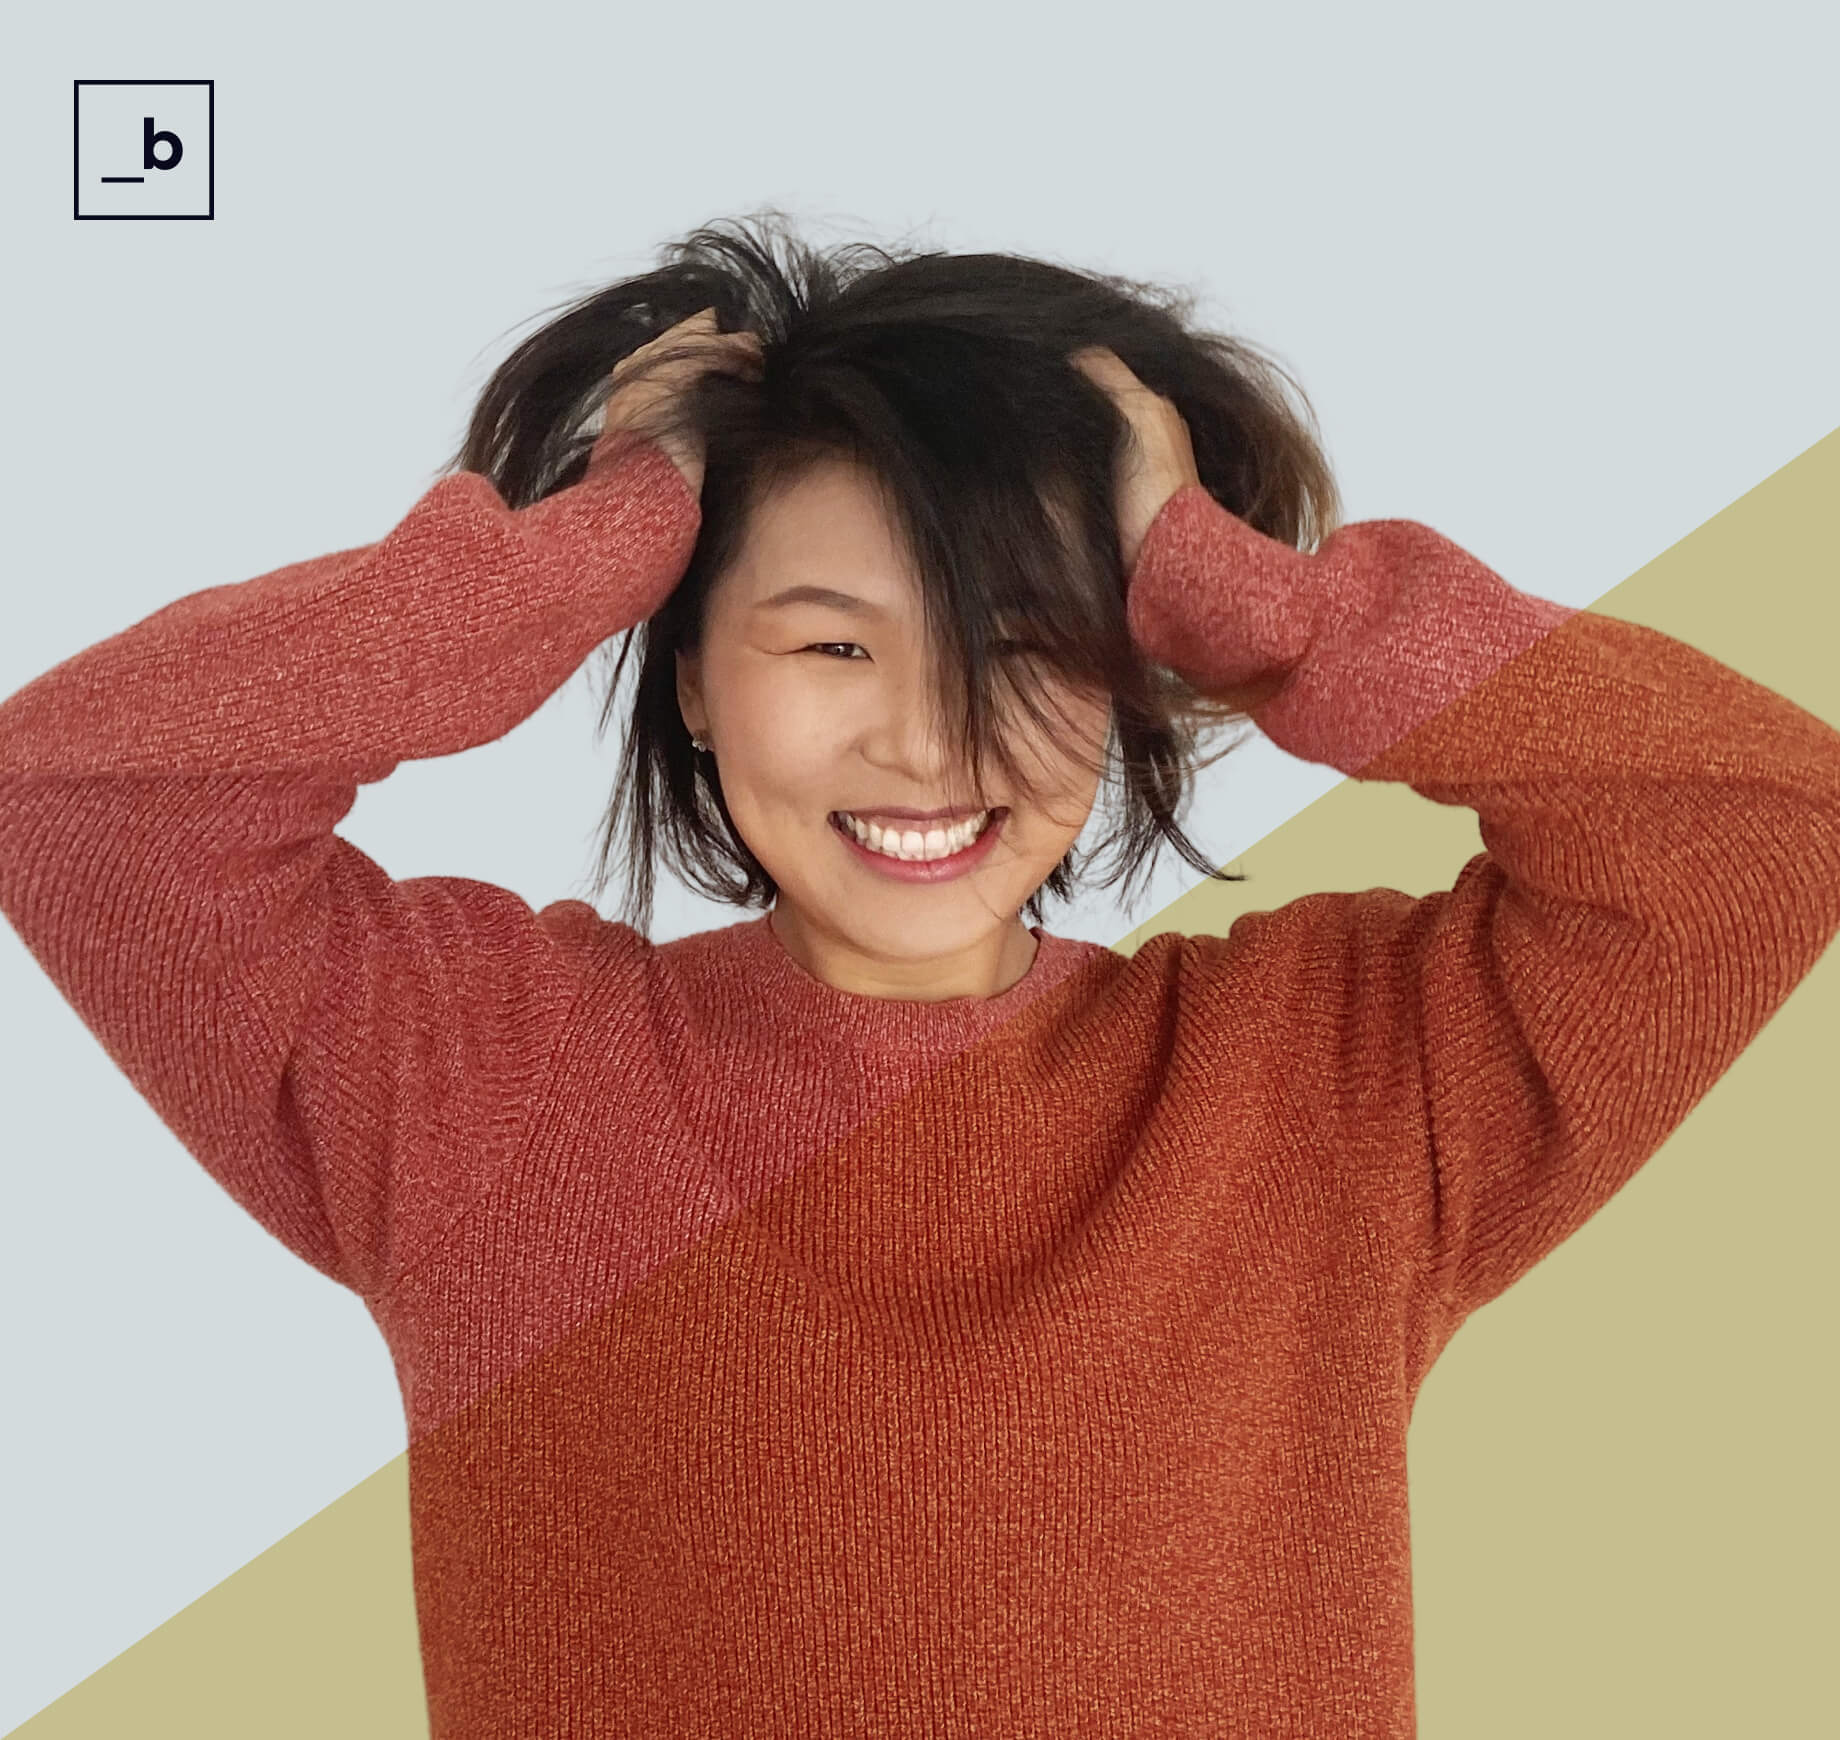 Woman in red sweater looking forward smiling, with her hands in her hair.